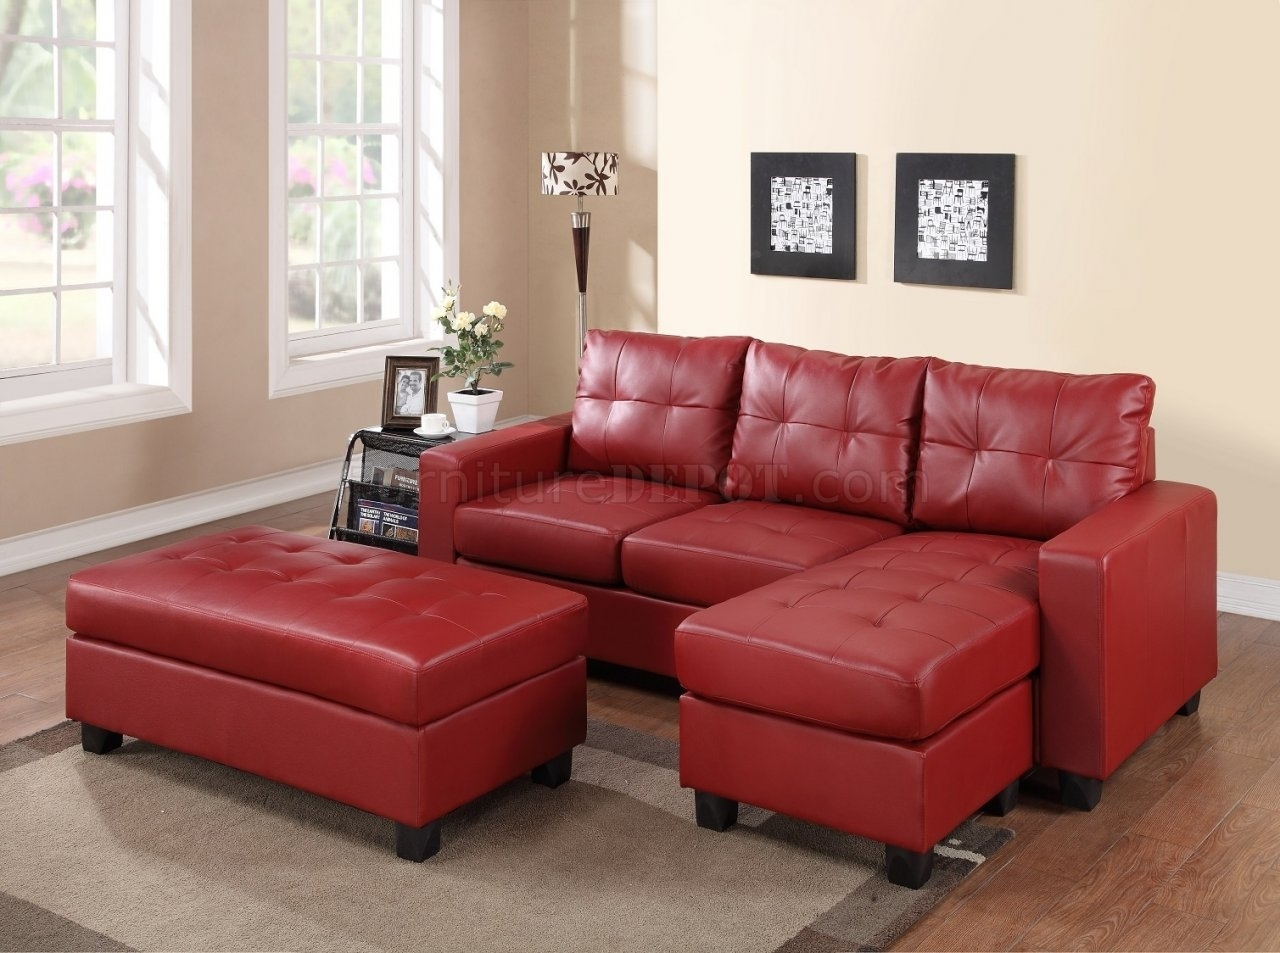 2511 Sectional Sofa Set In Red Bonded Leather Match Pu Throughout Red Leather Sectional Sofas With Ottoman (Image 1 of 10)